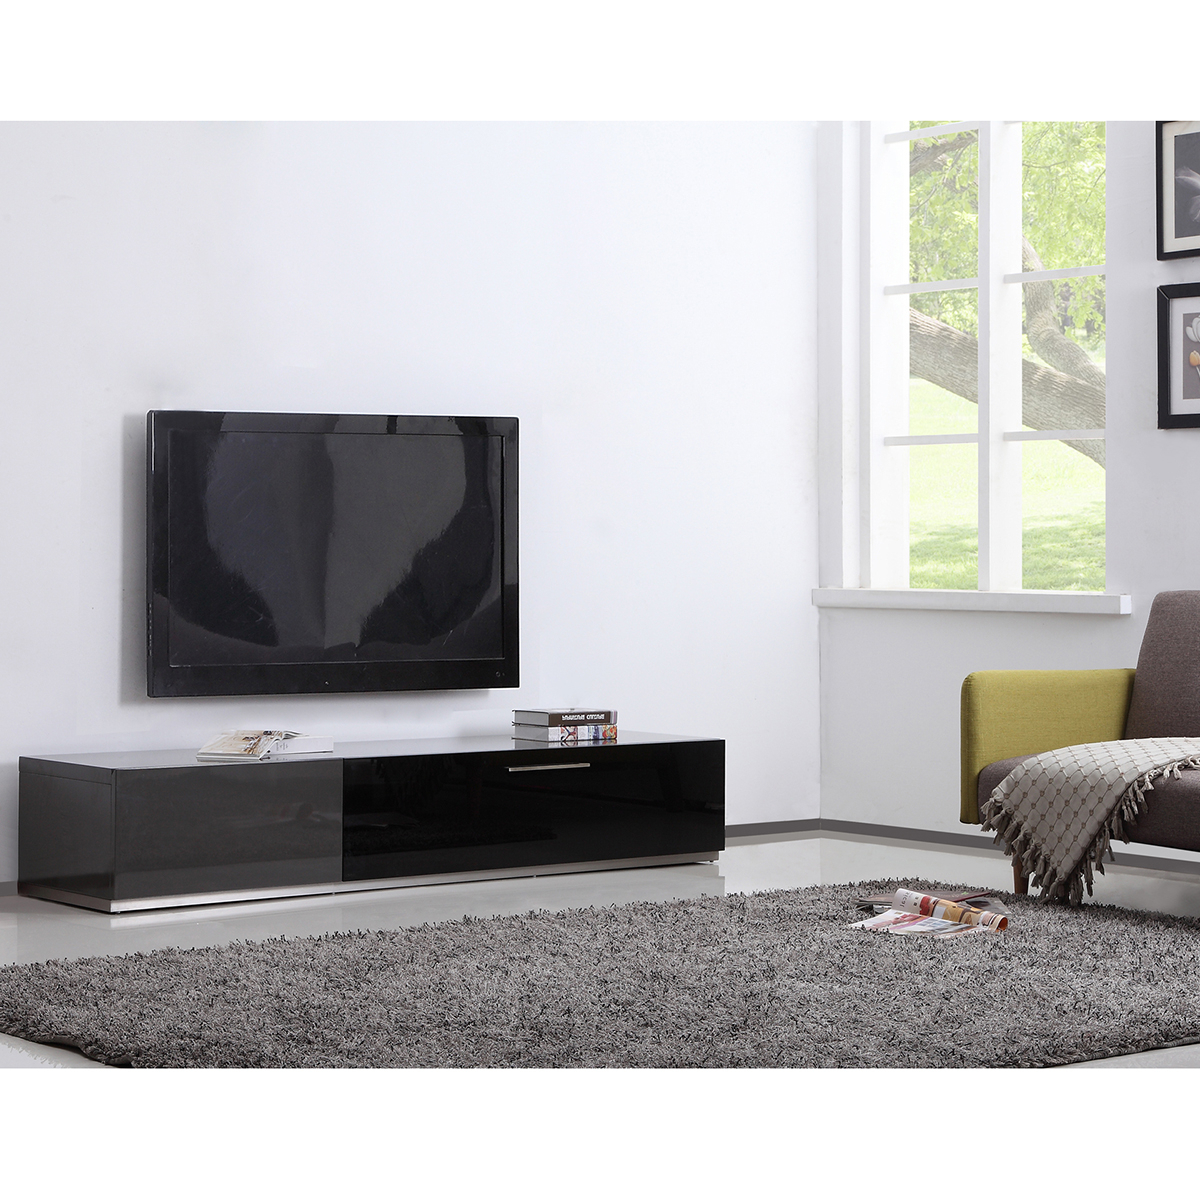 "B Modern Bm 150 Gry Producer 80"" Contemporary Tv Stand In Grey High With Regard To Newest Modern Contemporary Tv Stands (Gallery 15 of 20)"